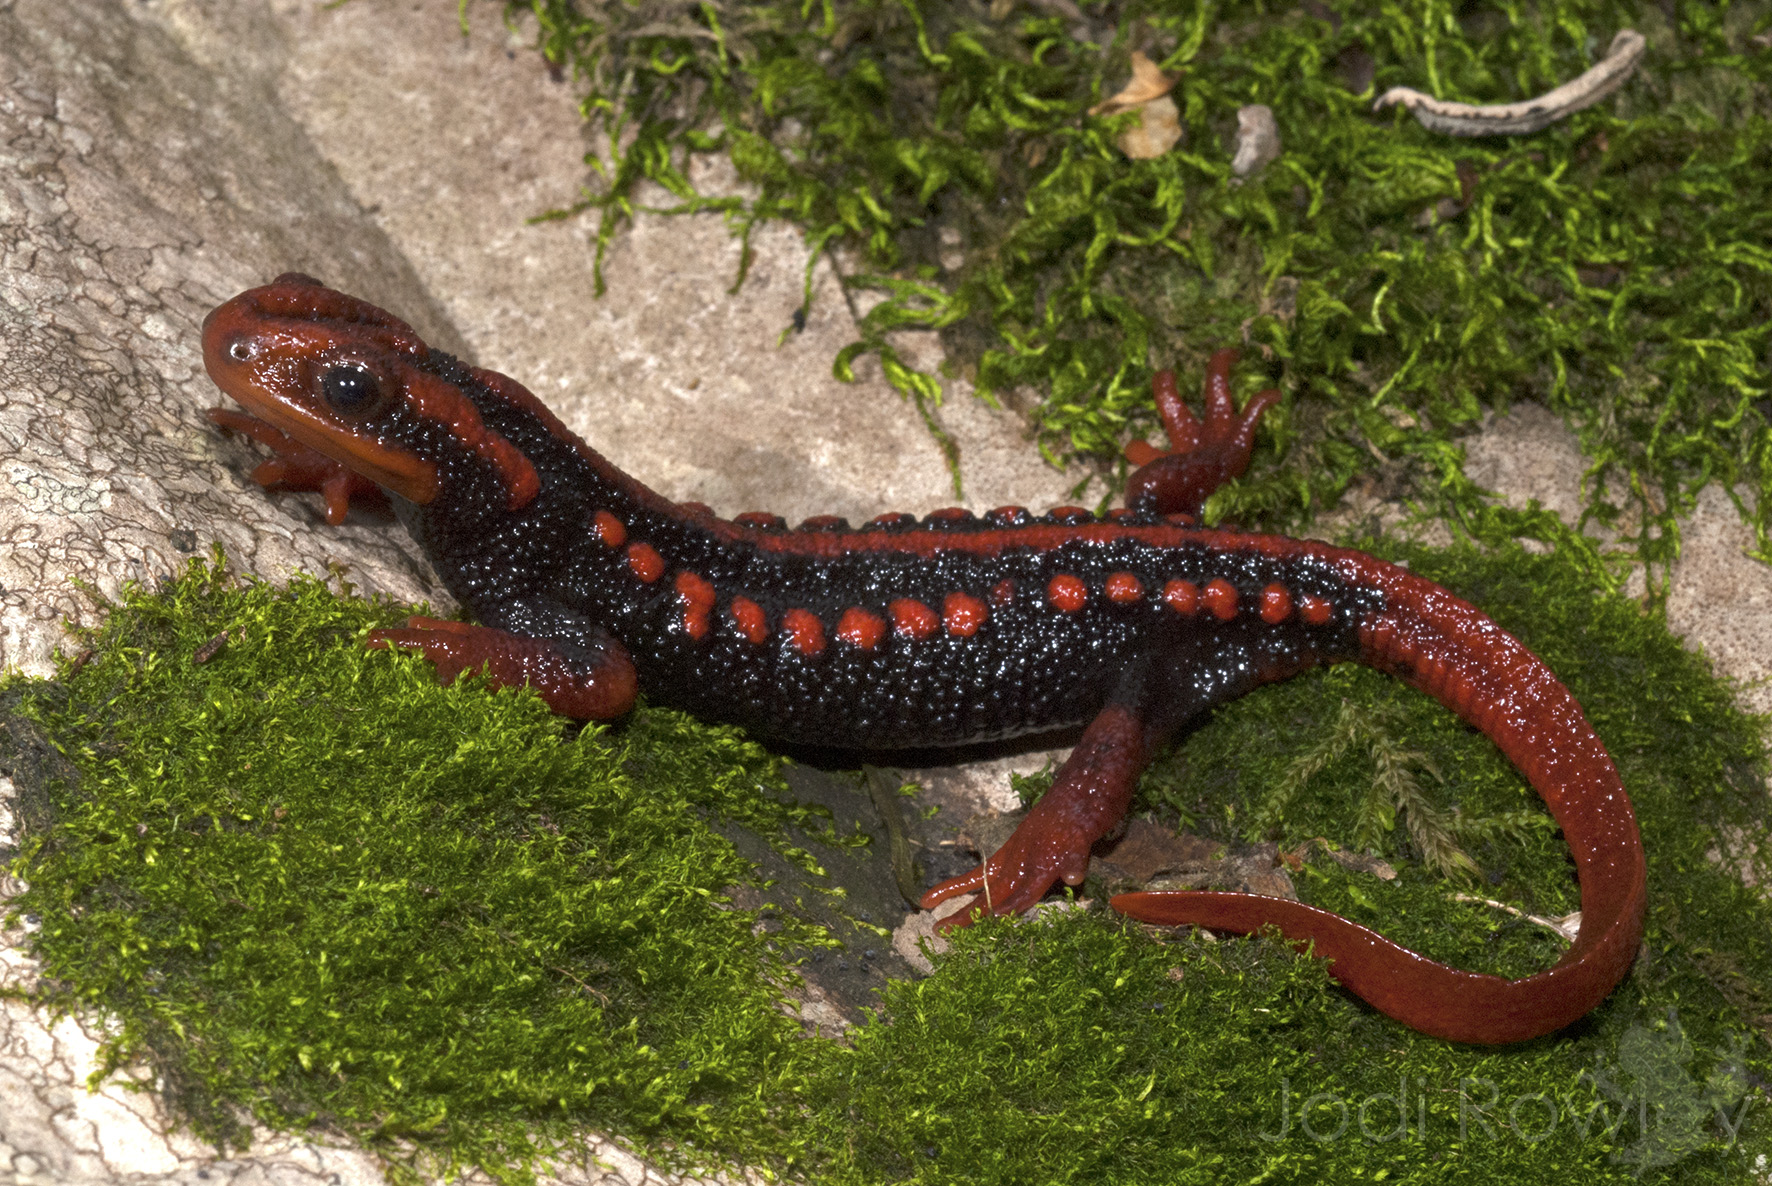 Conserving Asian newts could save the world's salamanders